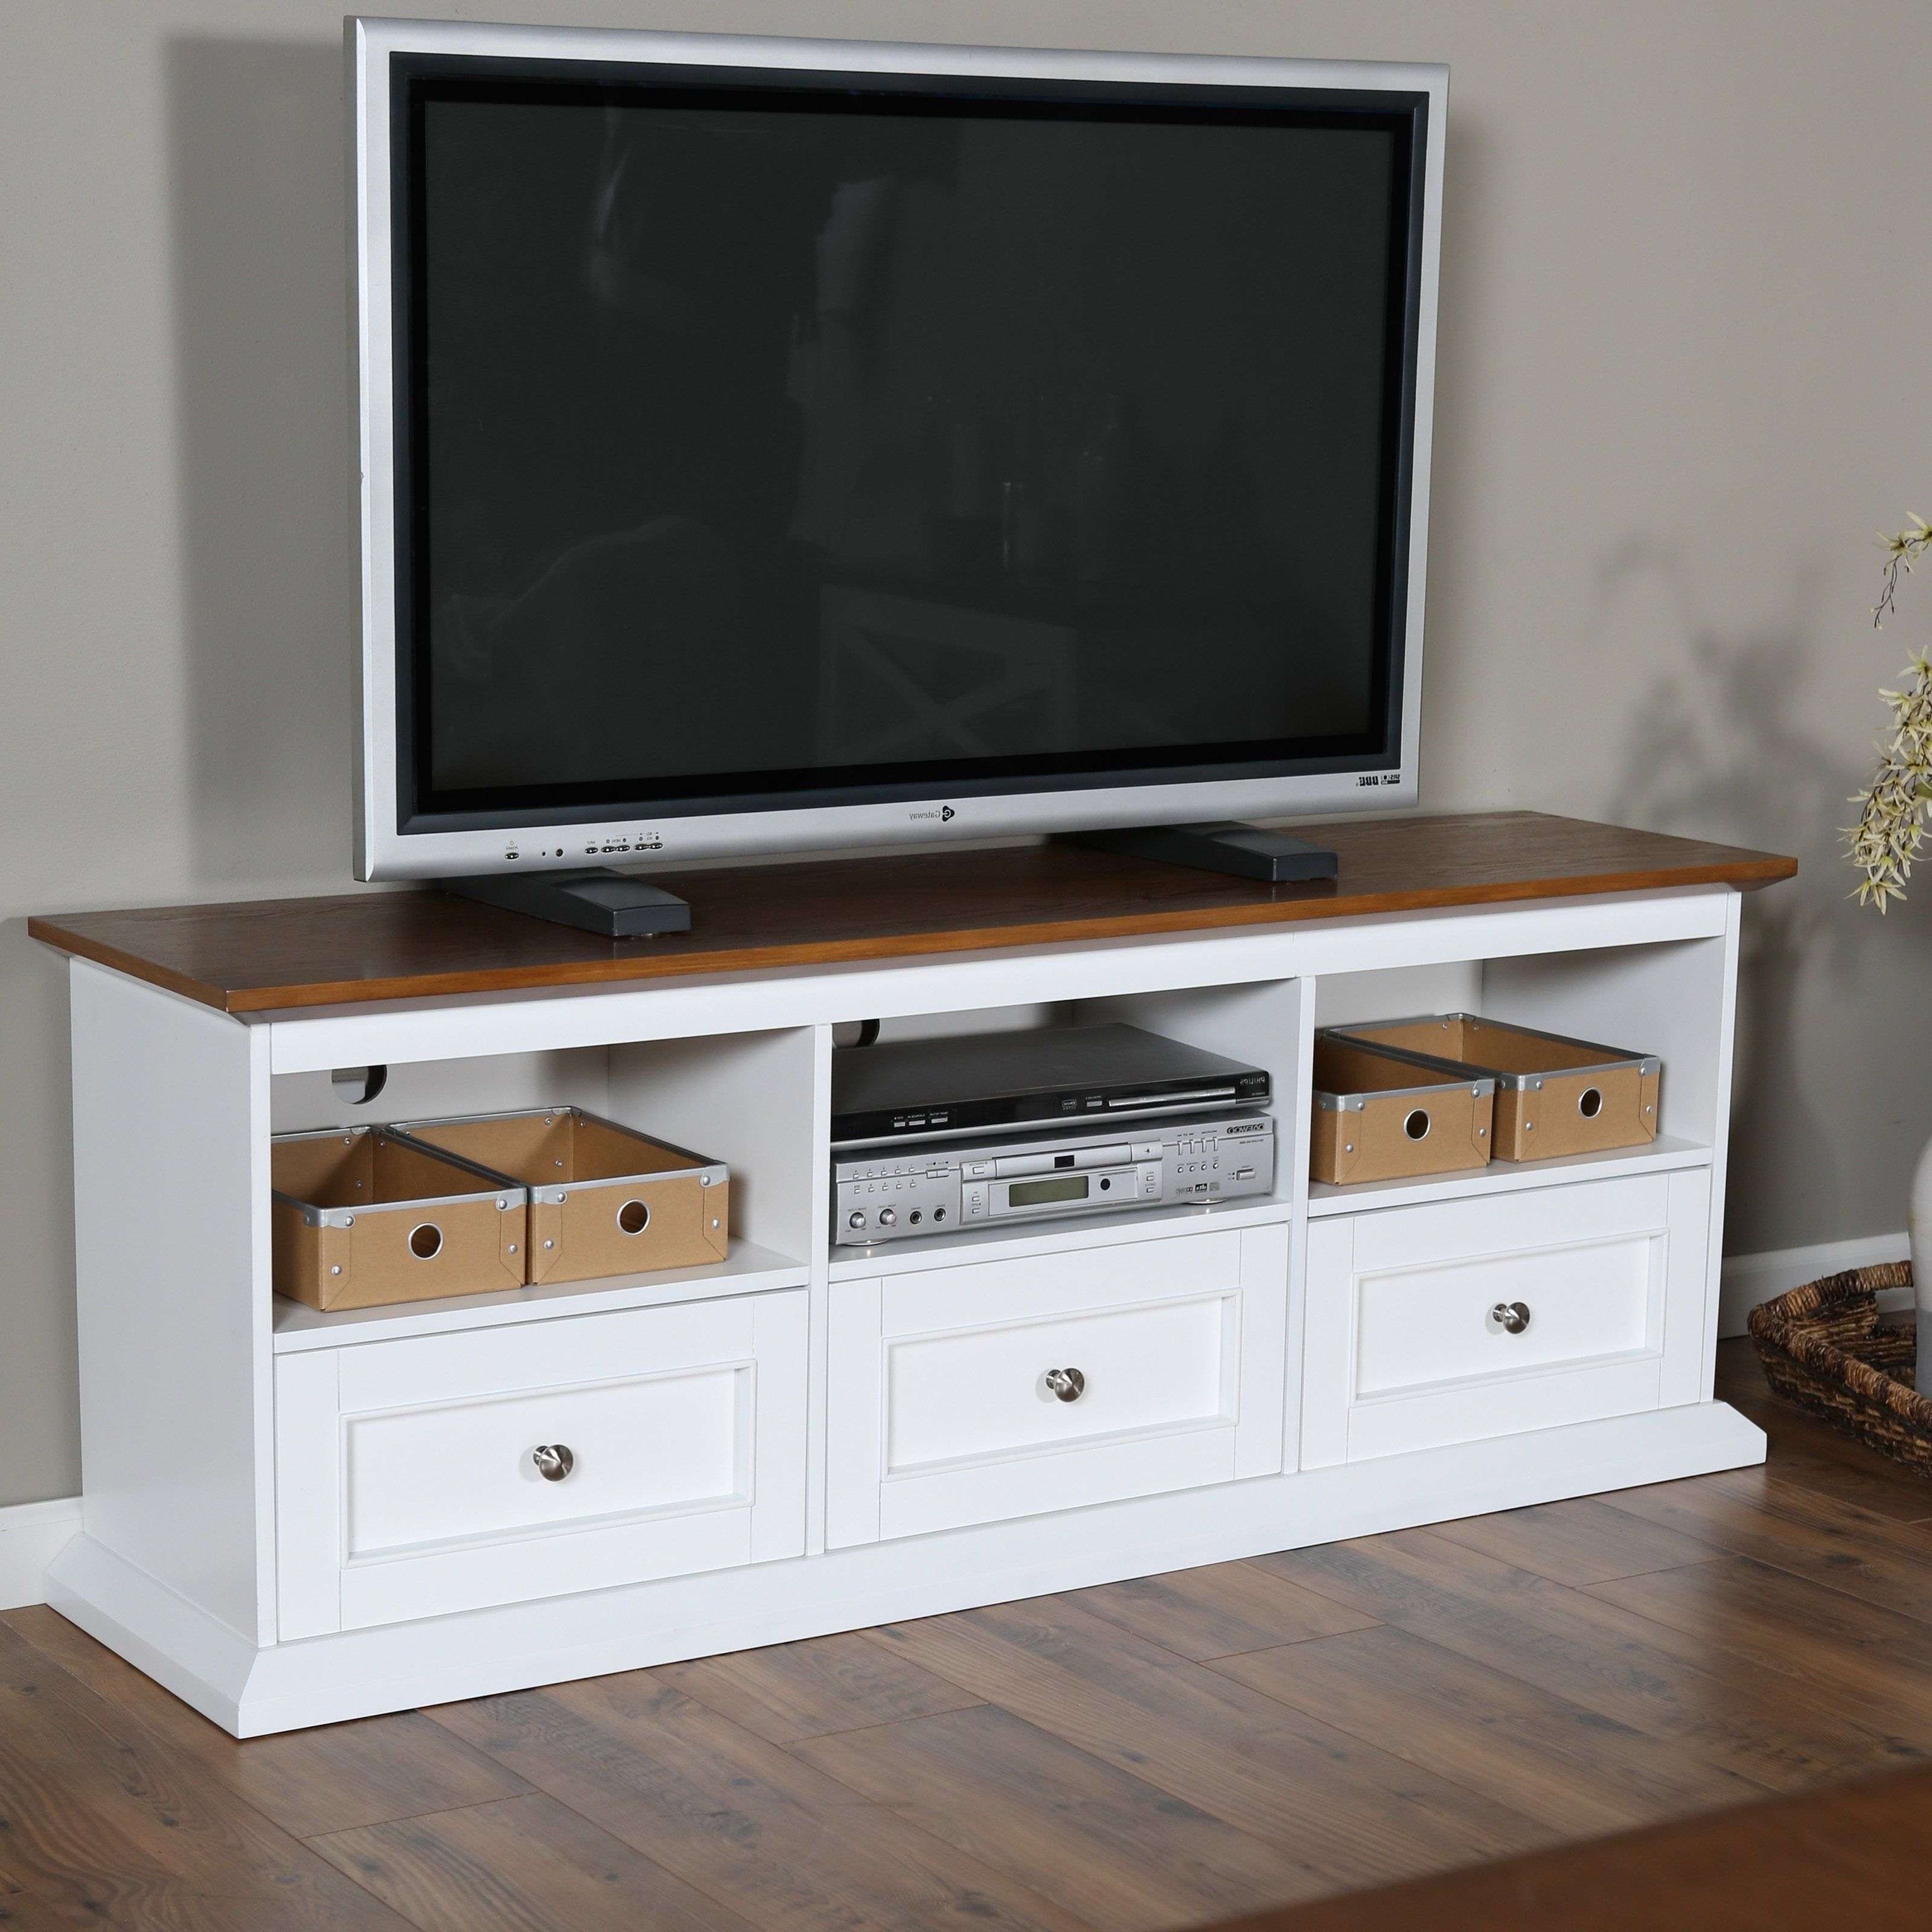 Fashionable Oak Tv Stands Intended For The Hampton Tv Stand With Drawers – White/oak (View 8 of 20)